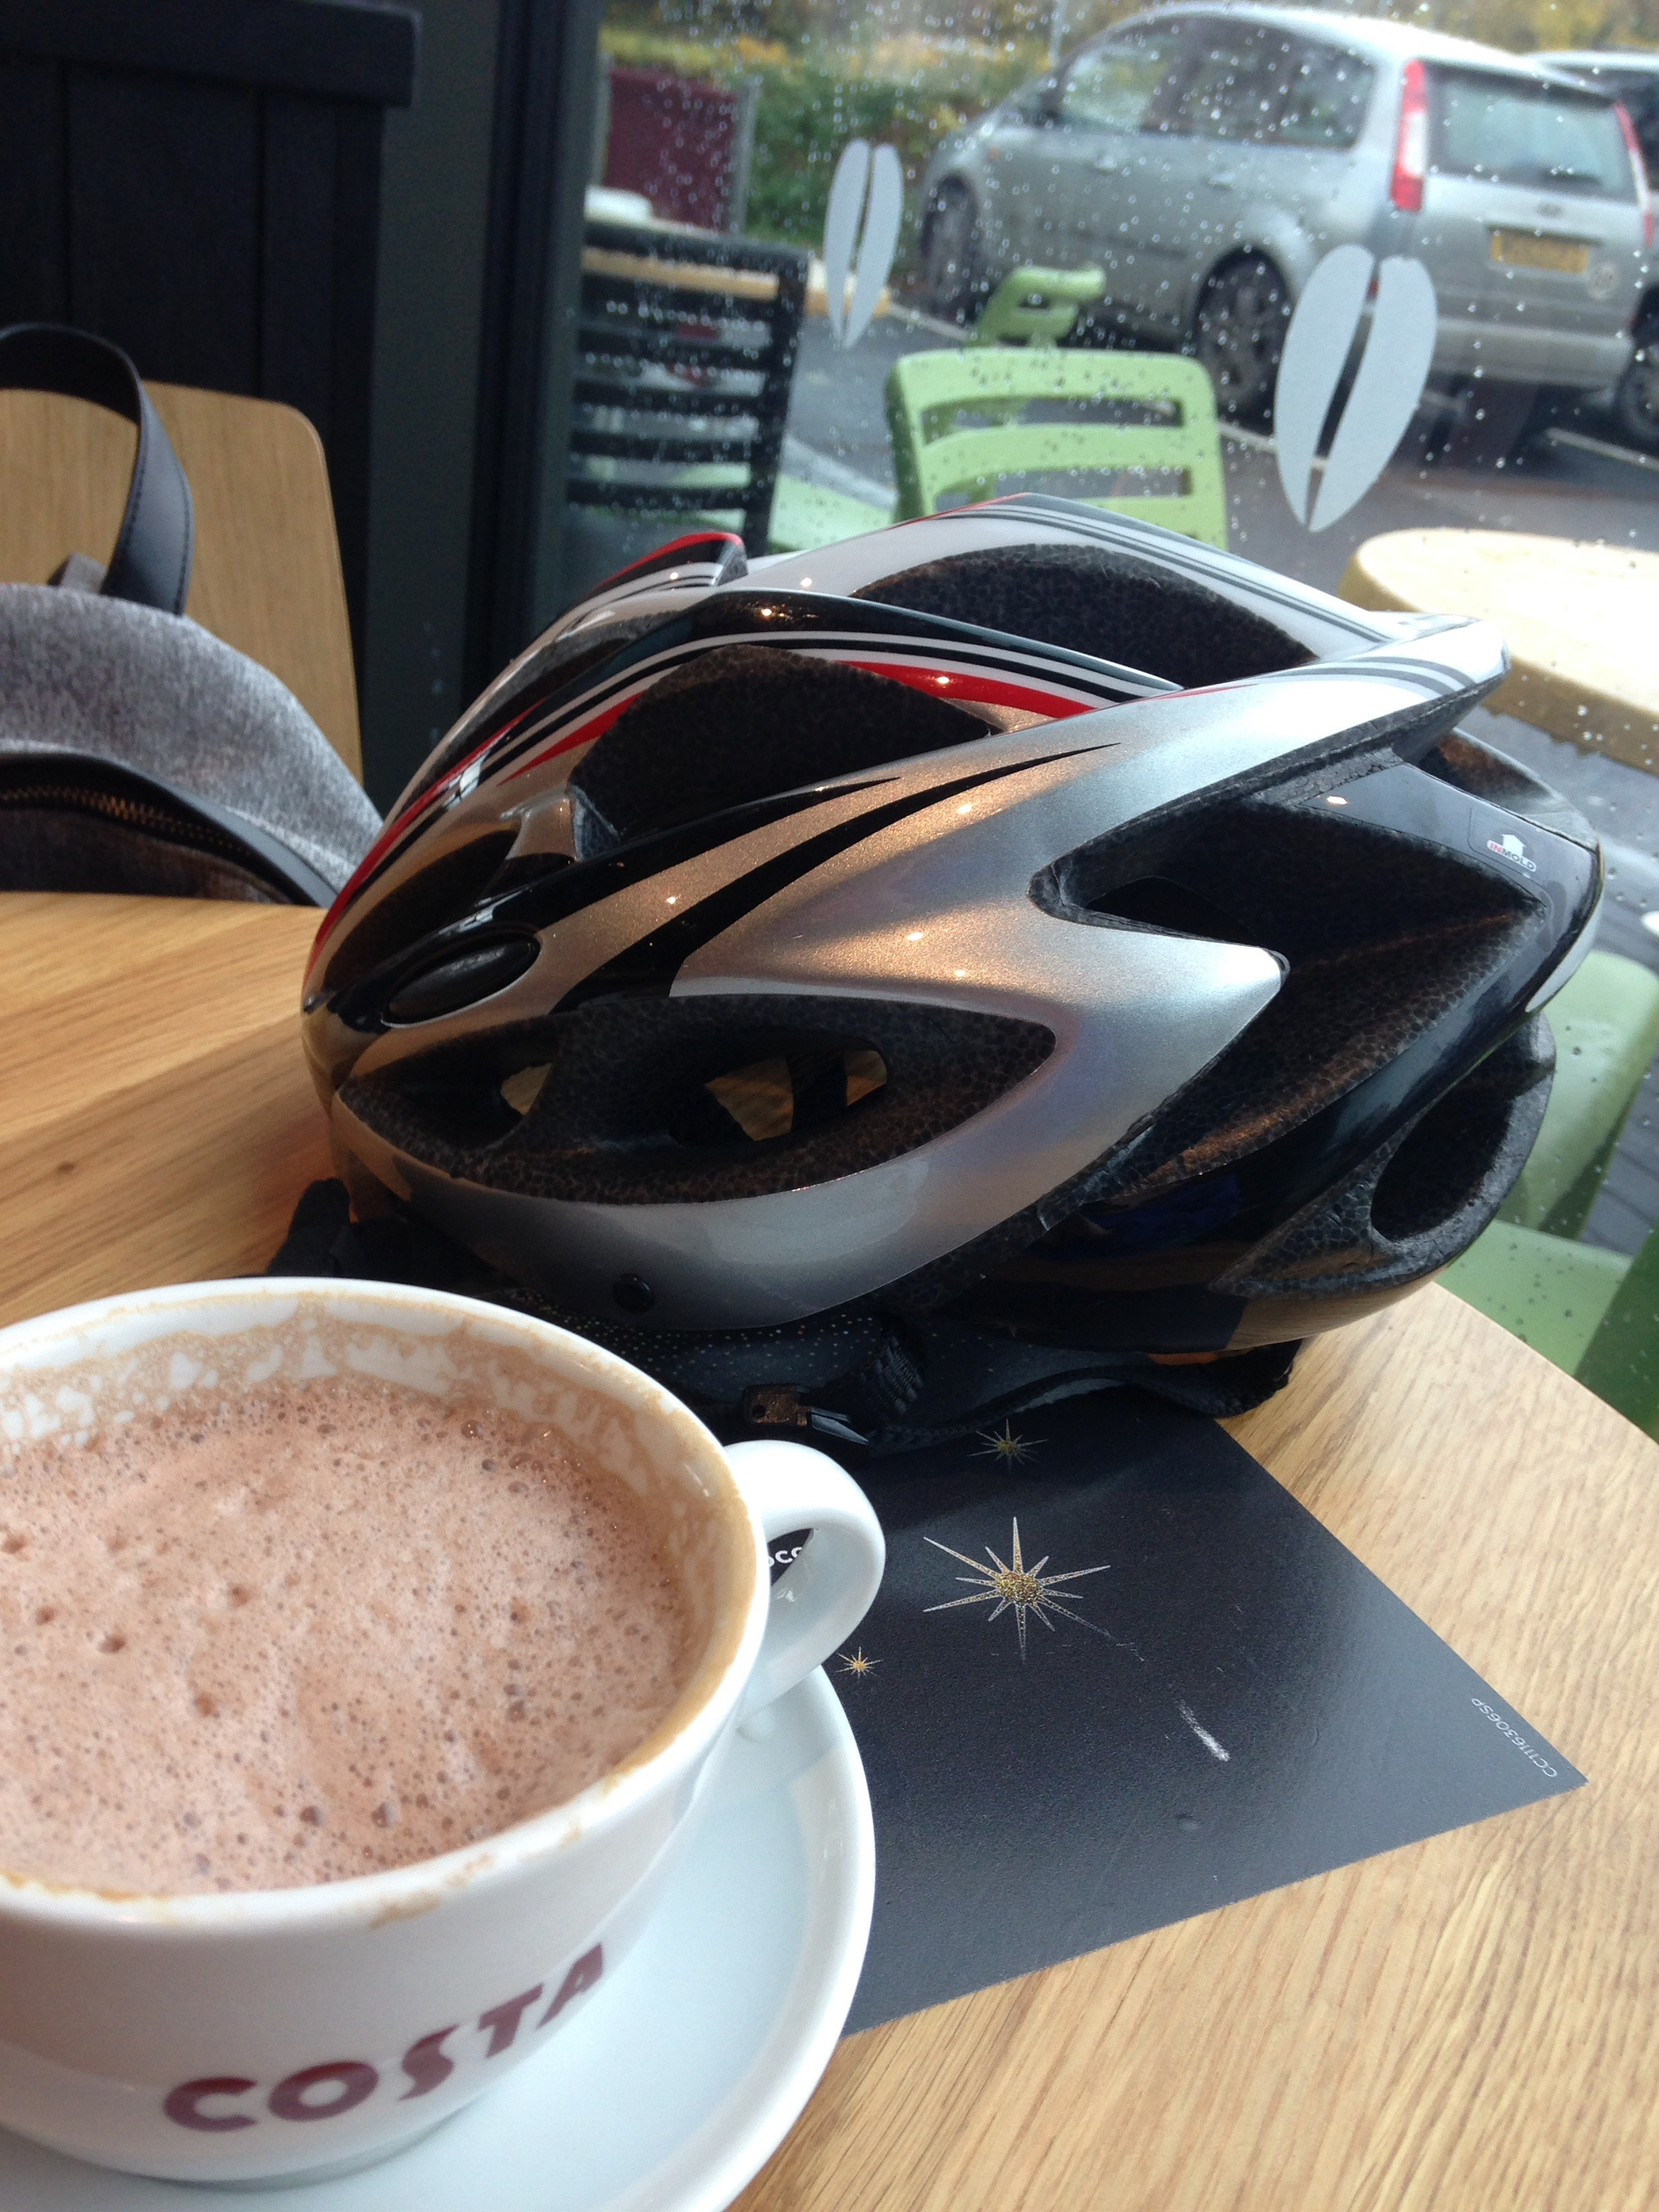 Compulsory 'helmet and drink' shot